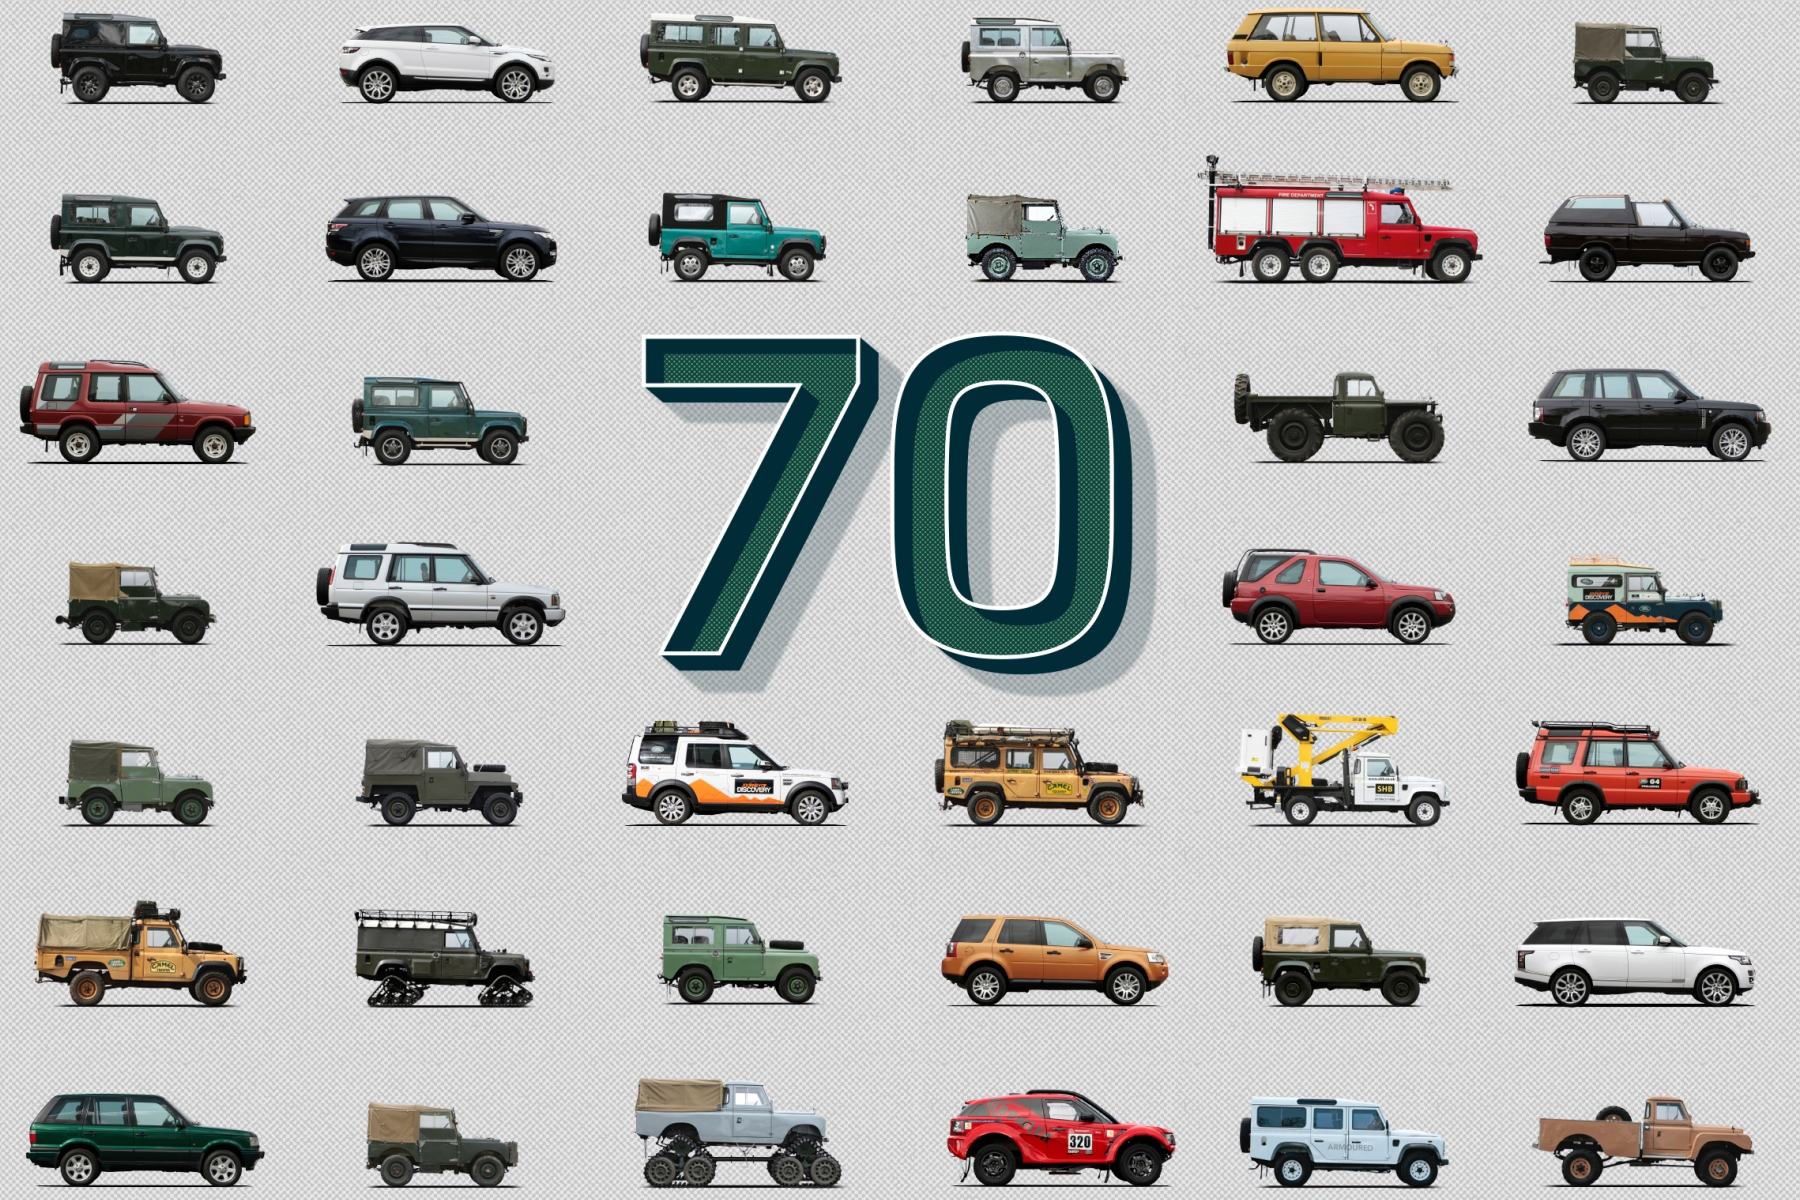 Land Rover celebrates 70 years